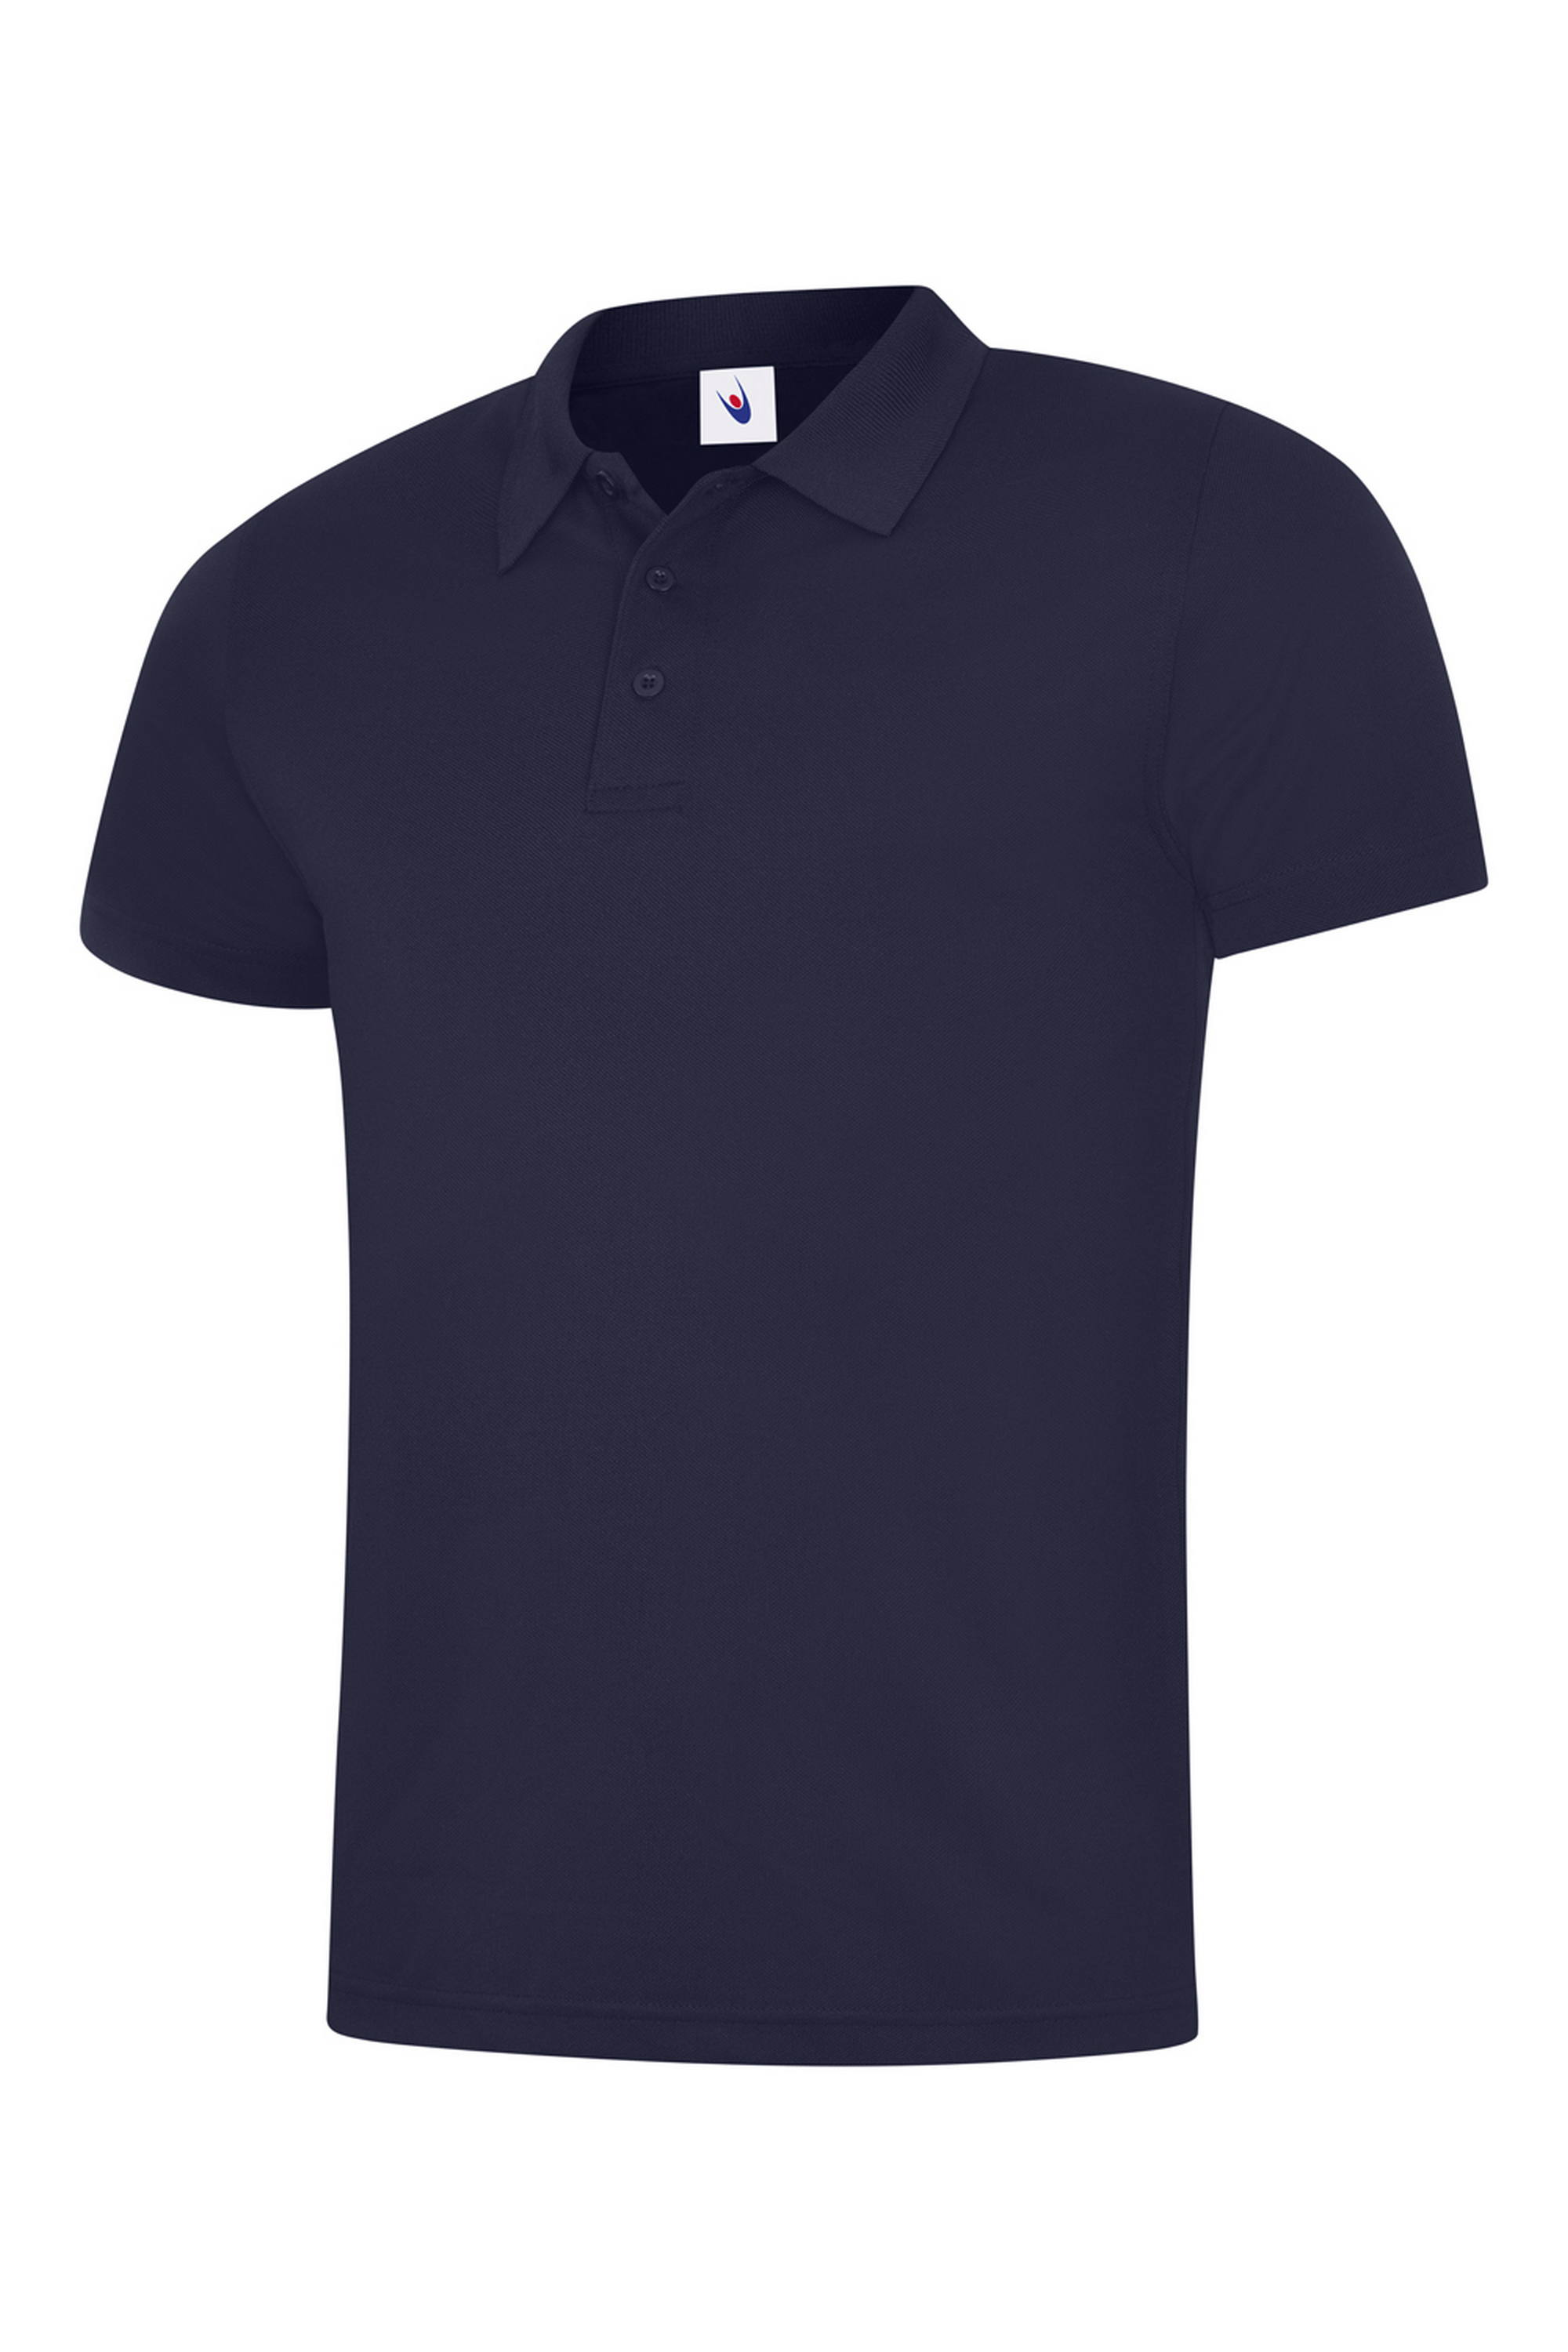 127 Mens Super Cool Workwear Polo Shirt